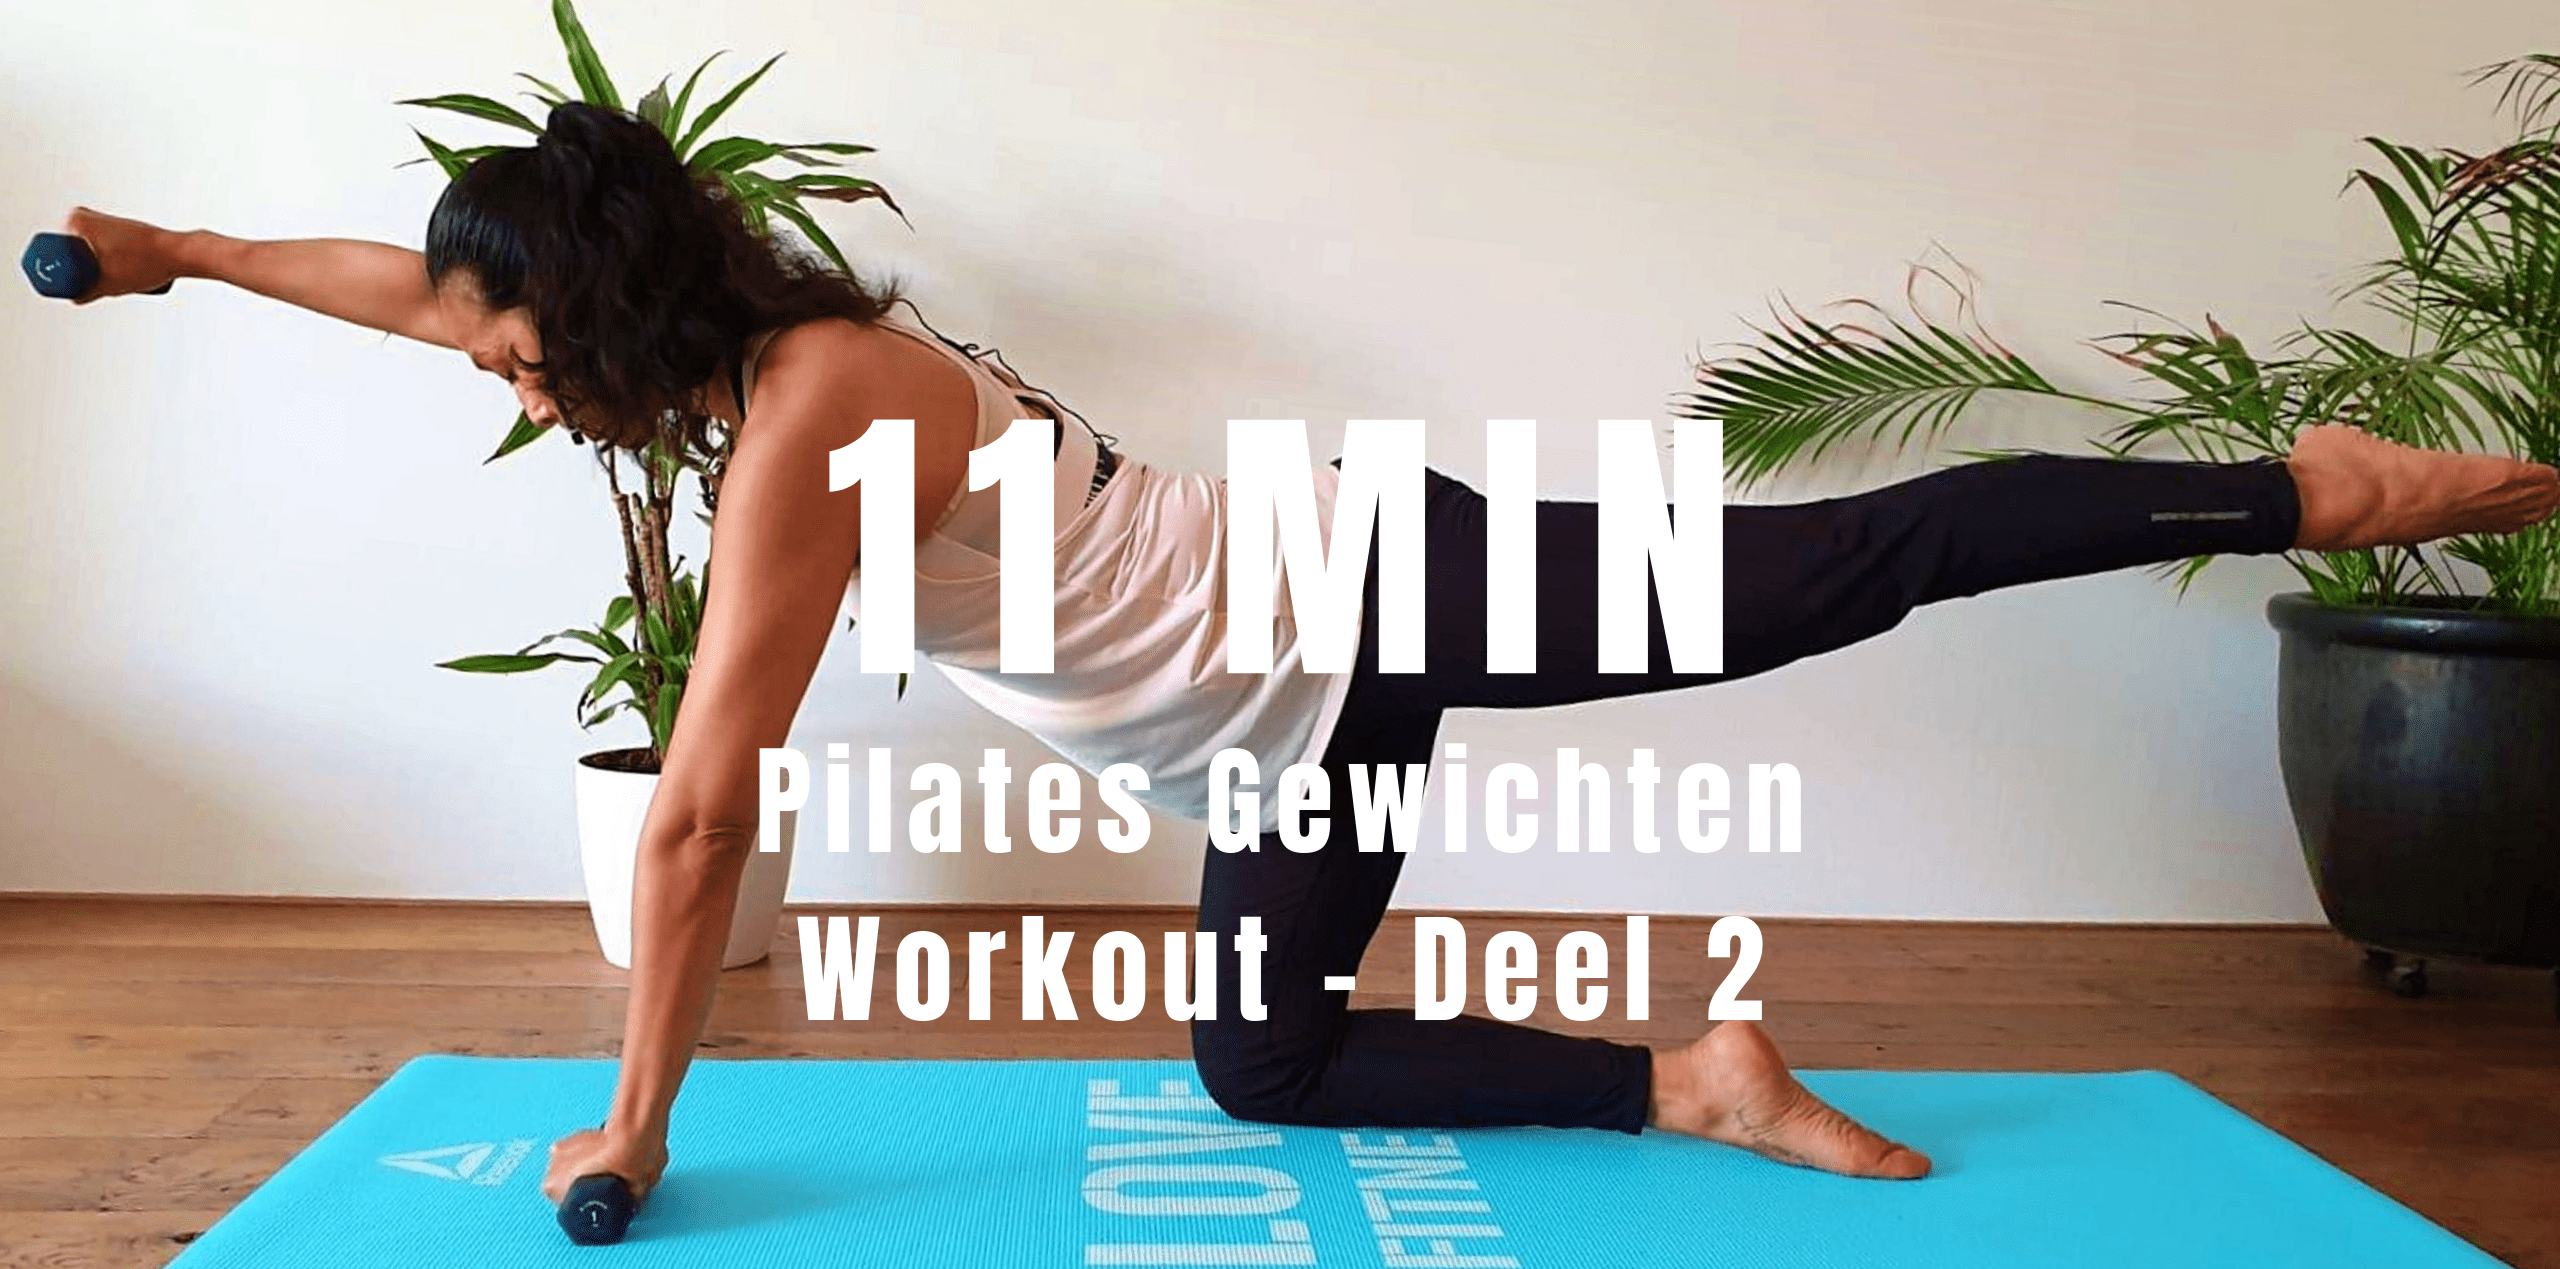 Pilates Gewichten Workout – Deel 2 | strongbody.nl